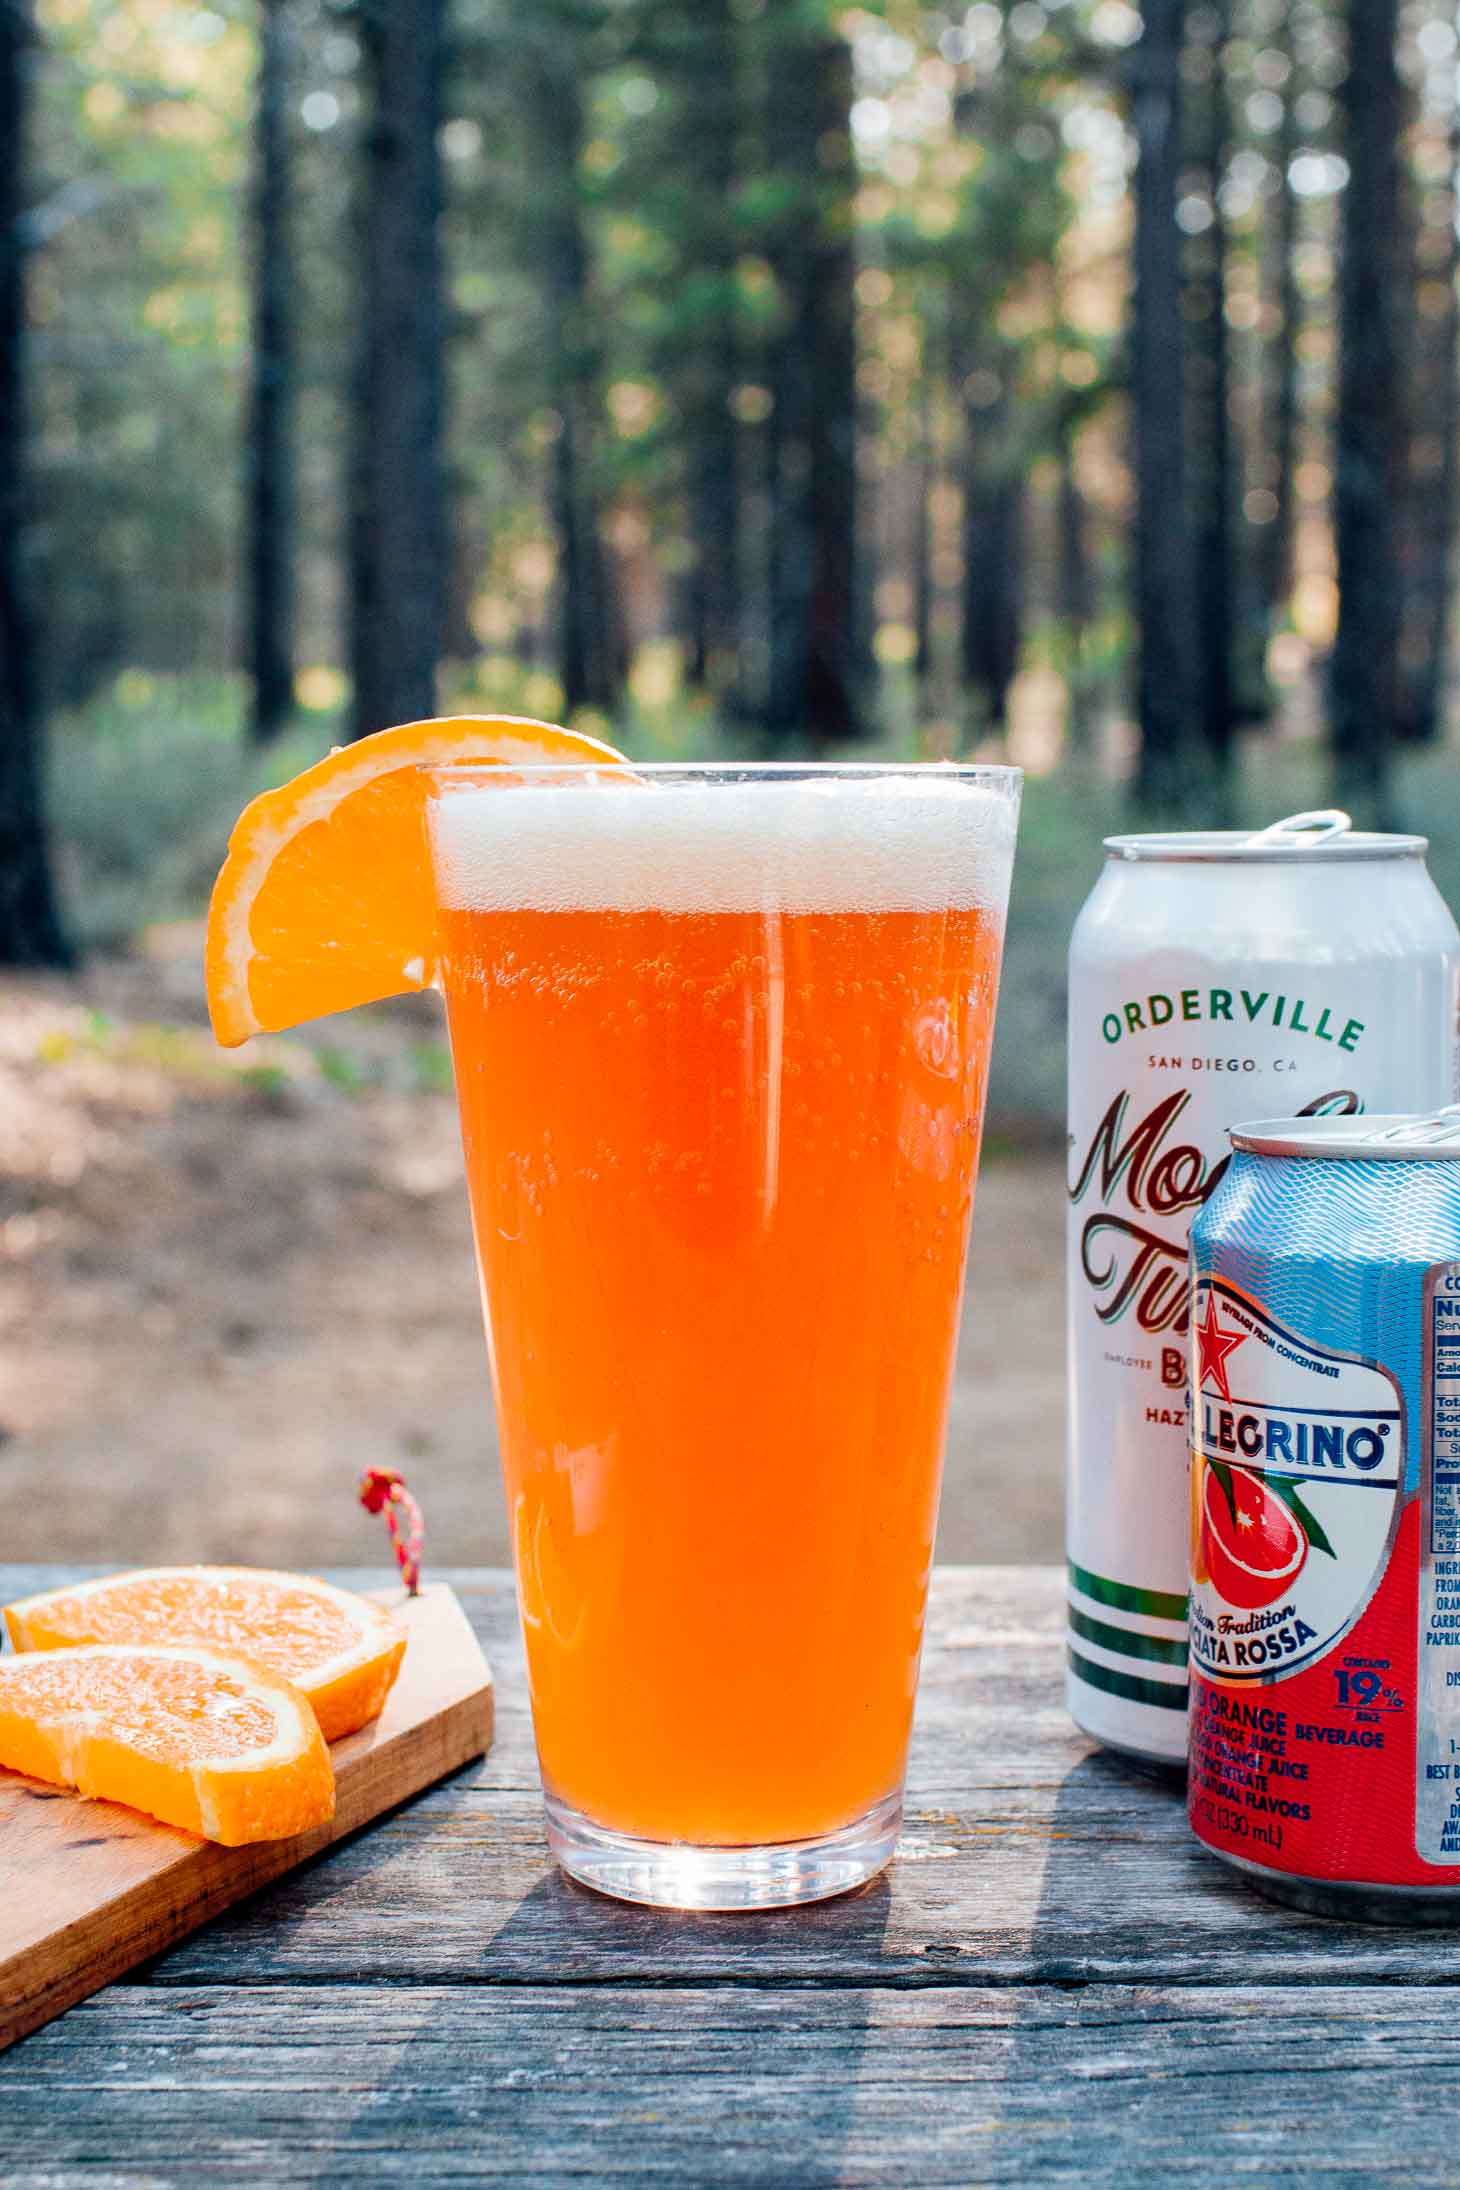 A shandy and ingredients with a forest scene in the background